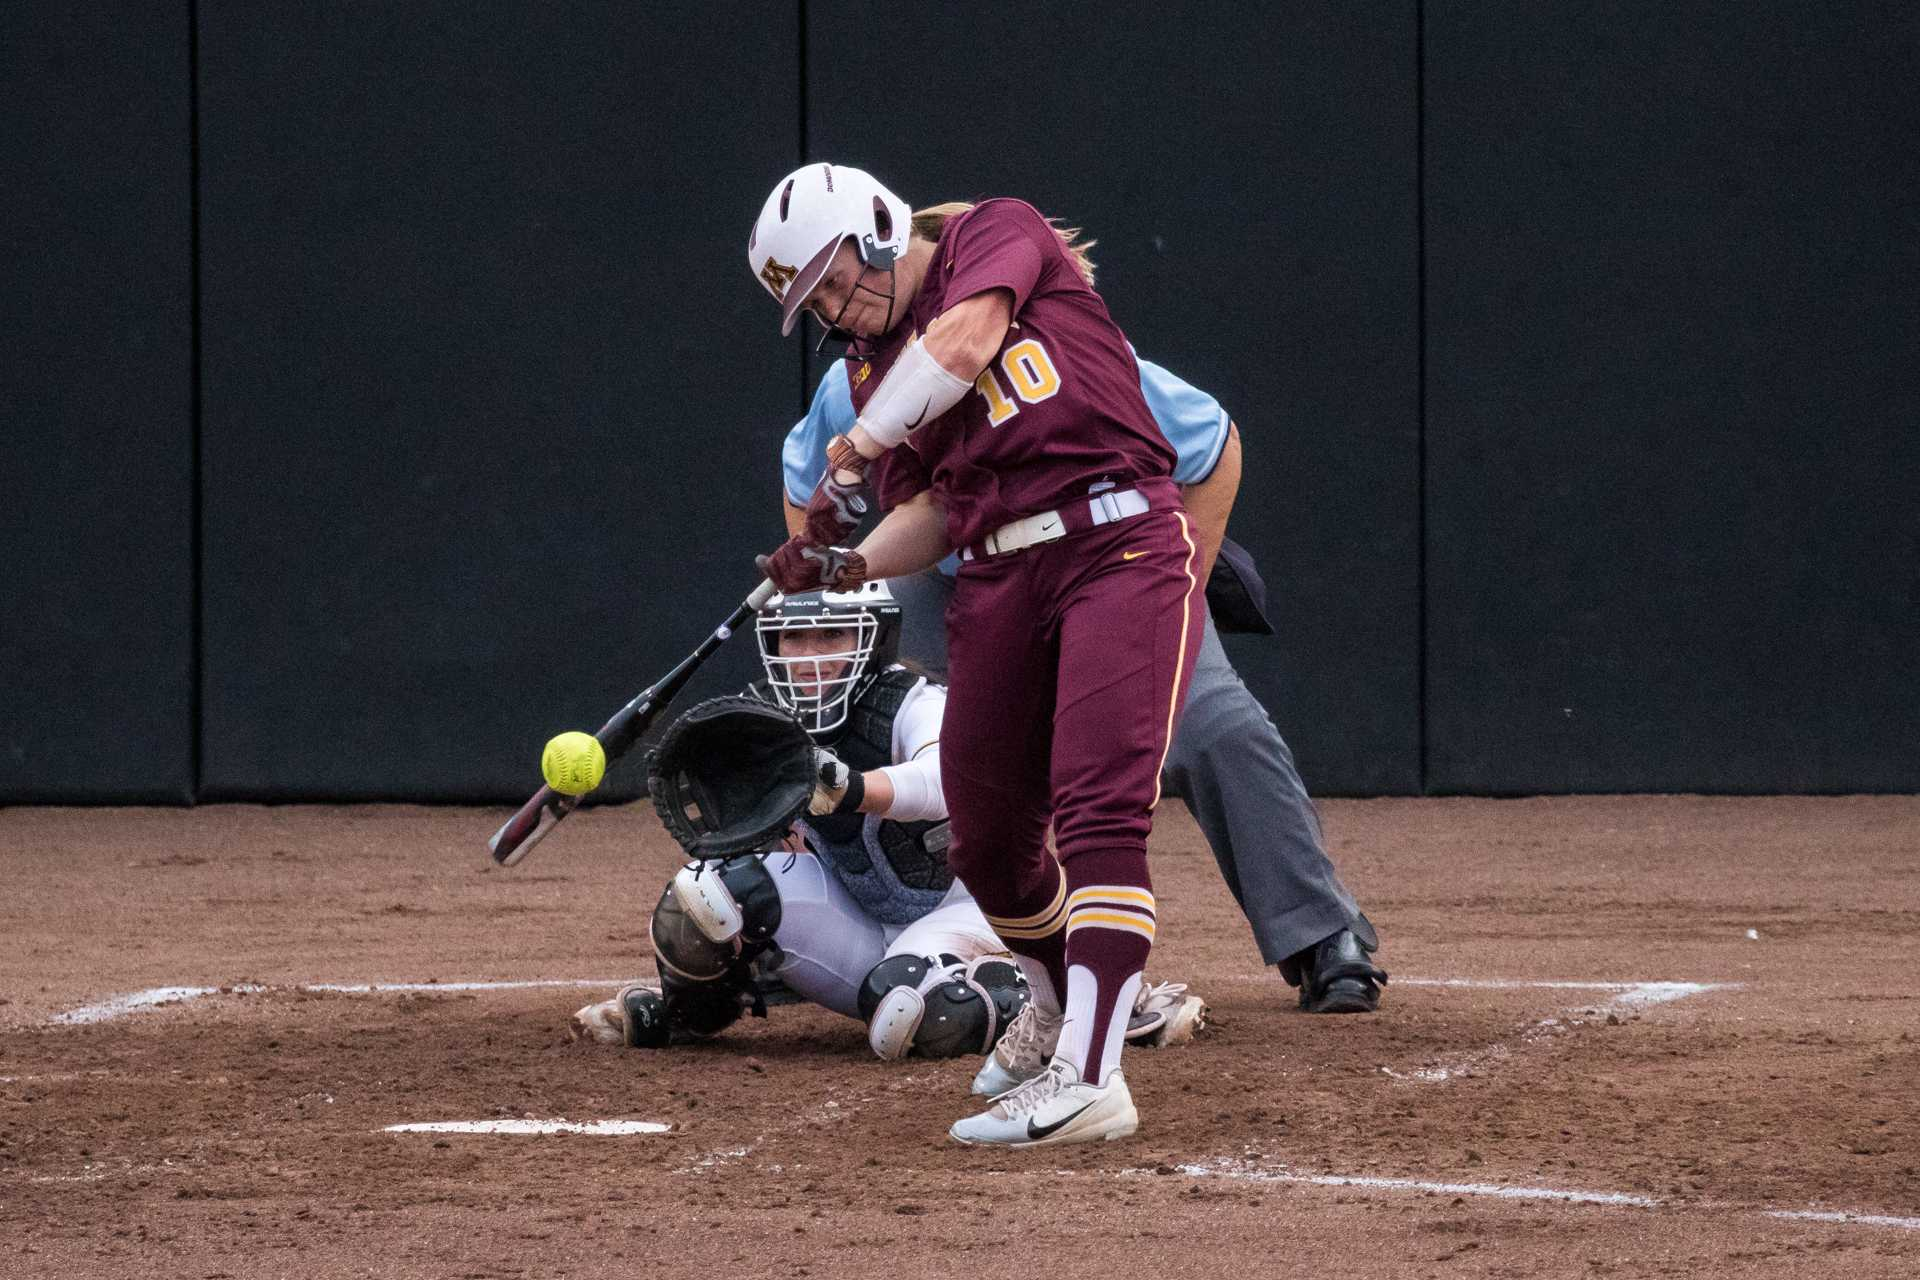 University of Minnesota softball player Alex Velazquez makes contact with the ball during a game against the University of Iowa on Thursday, Apr. 12, 2018. The Gophers defeated the Hawkeyes 8-0. (David Harmantas/The Daily Iowan)